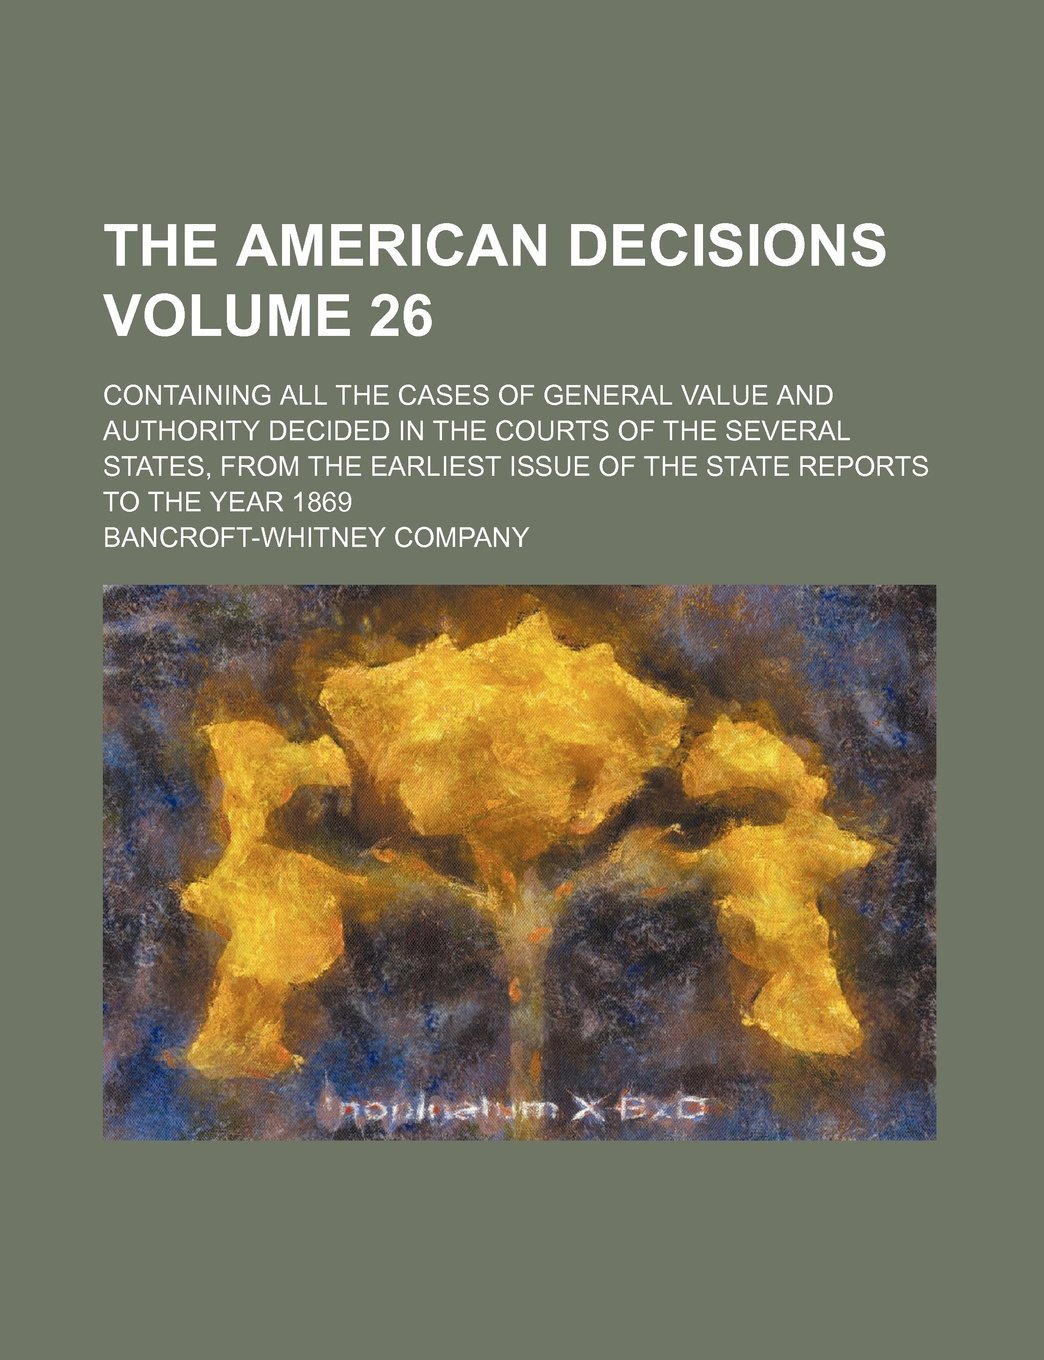 The American decisions Volume 26; containing all the cases of general value and authority decided in the courts of the several states, from the earliest issue of the state reports to the year 1869 pdf